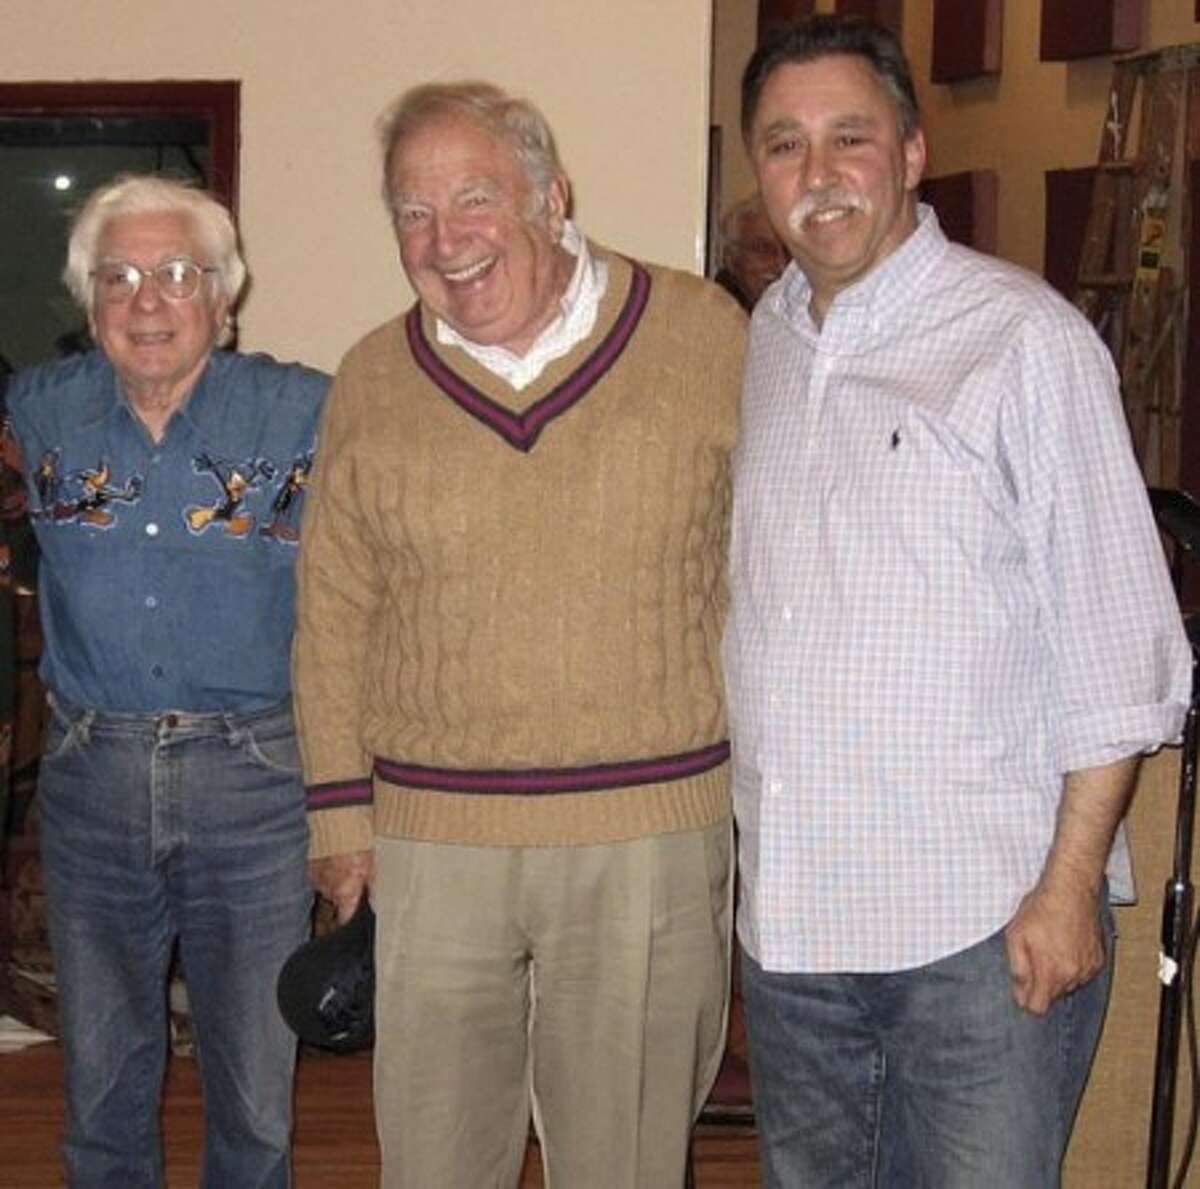 Jerry Bruno, Bucky Pizzarelli, and John Cutrone will play two sets at Sono Seaport Seafood Restaurant on sunday to celebrate the release of Cutrone